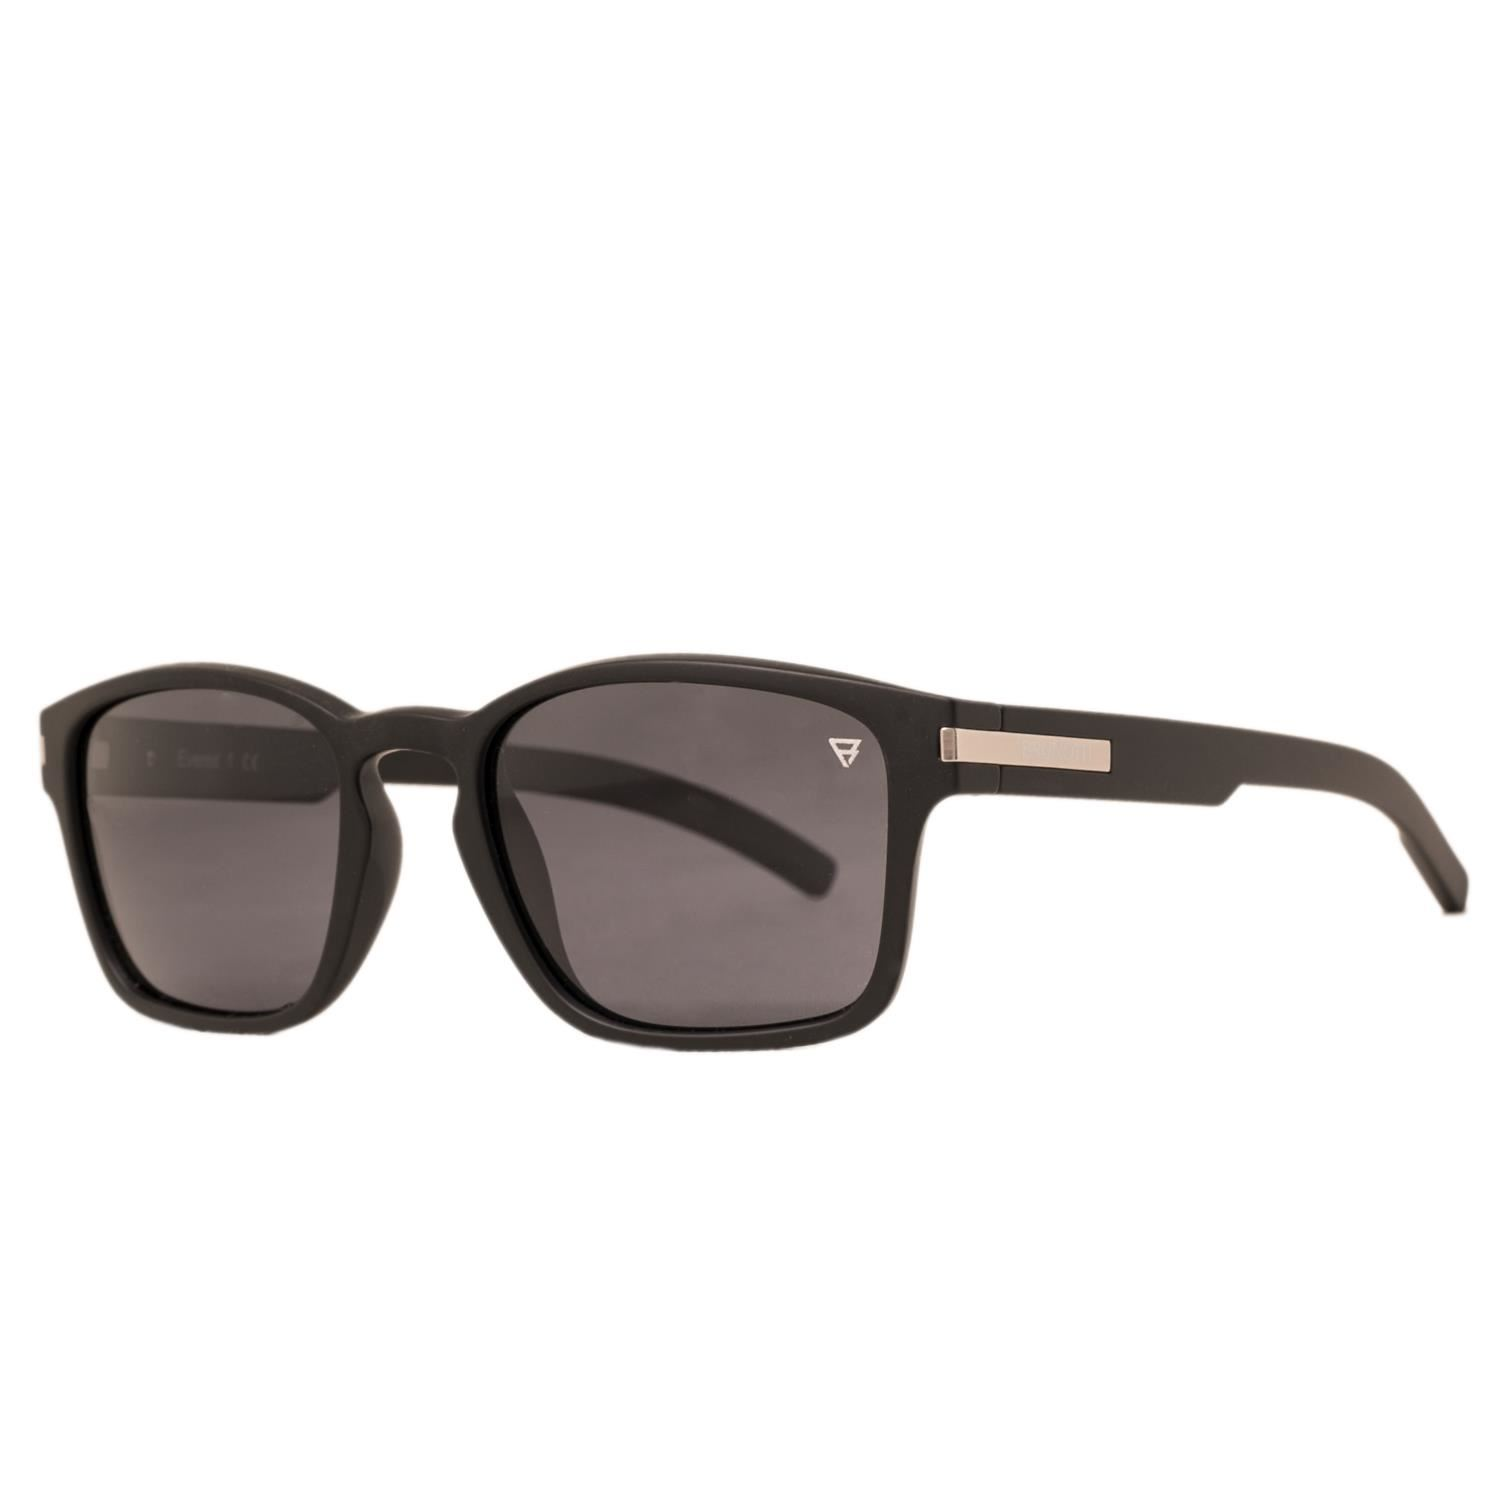 Brunotti Everest 1 Unisex Eyewear